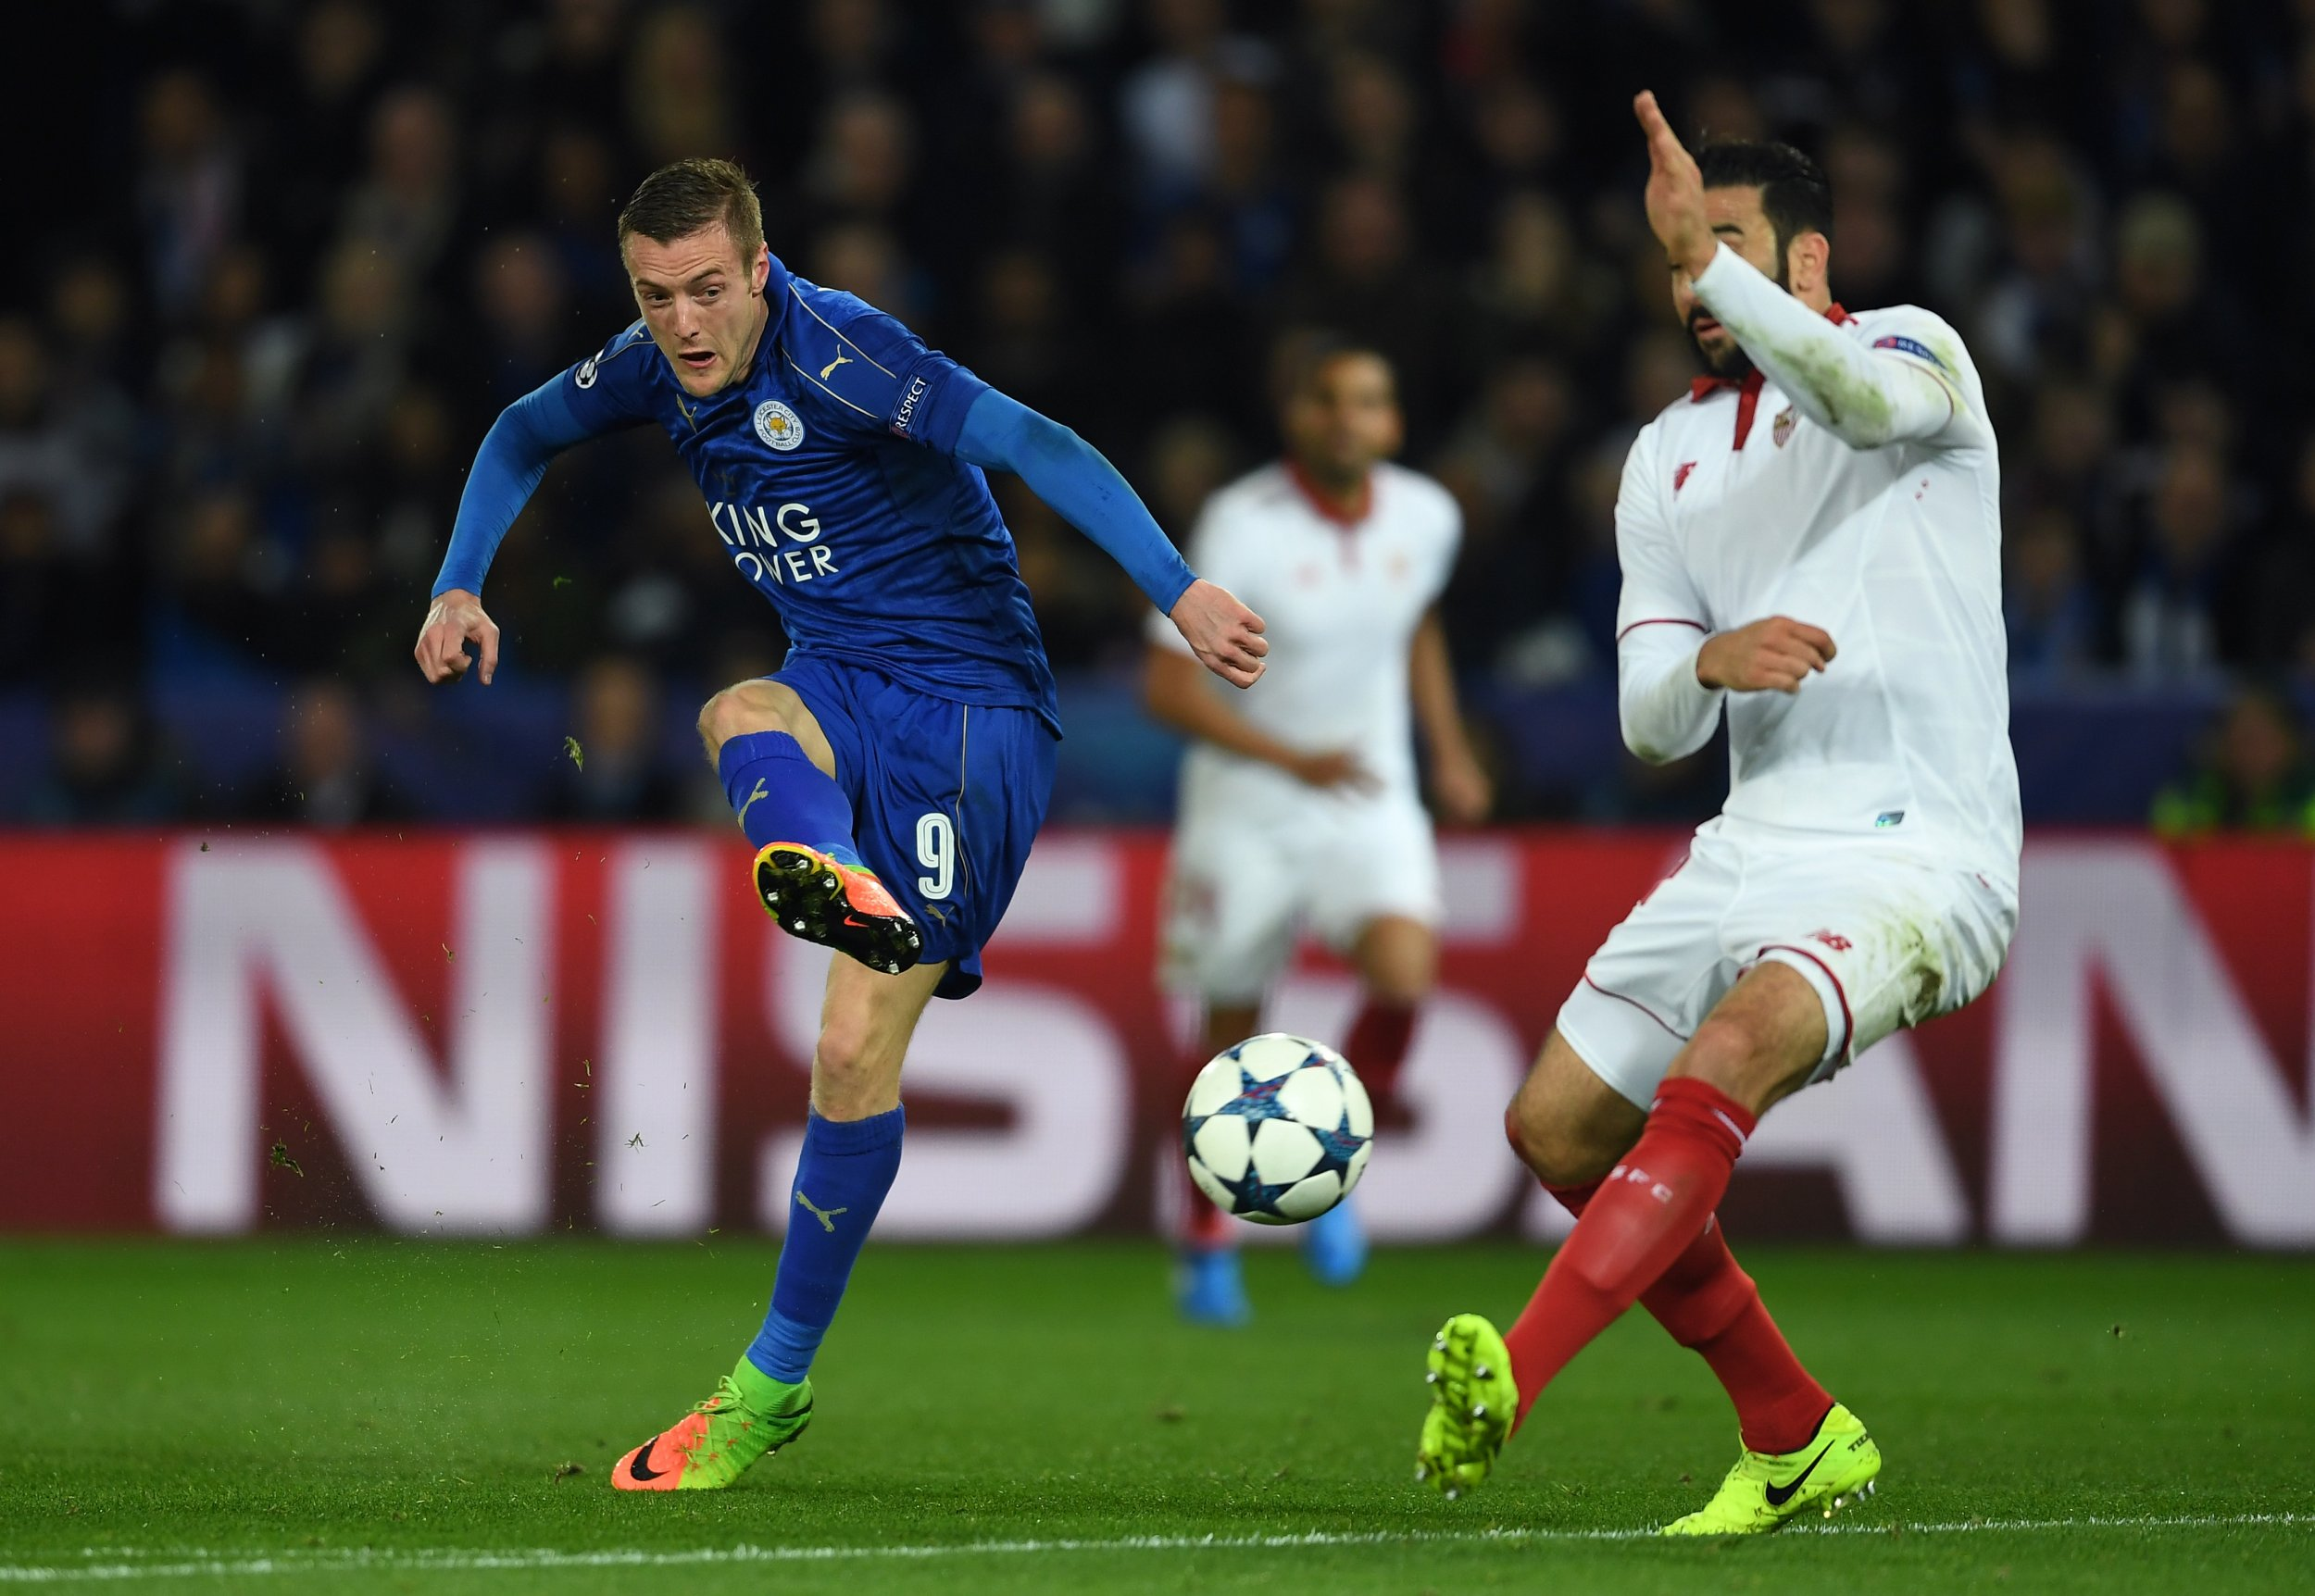 Jamie Vardy Leicester City Striker Tells of Death Threats Over